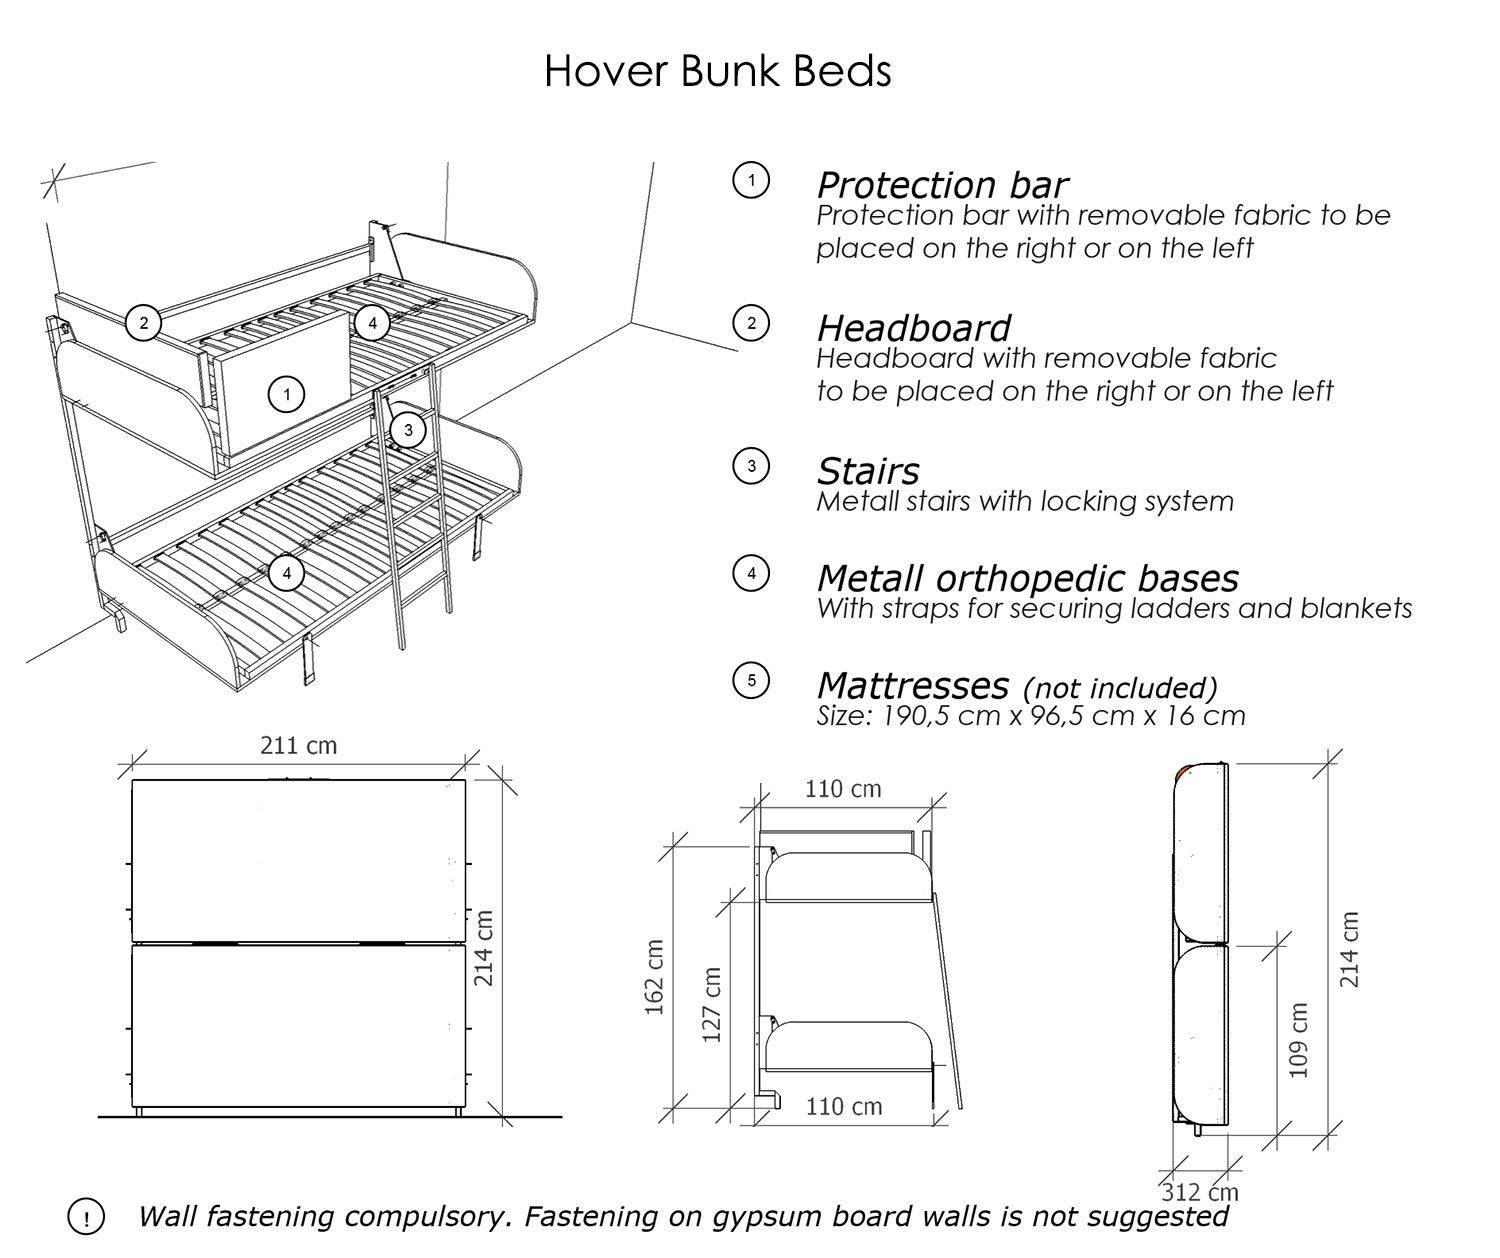 Hover Compact Fold Away Wall Bunk Beds Bunk Beds Bunk Bed Designs Space Saver Bed